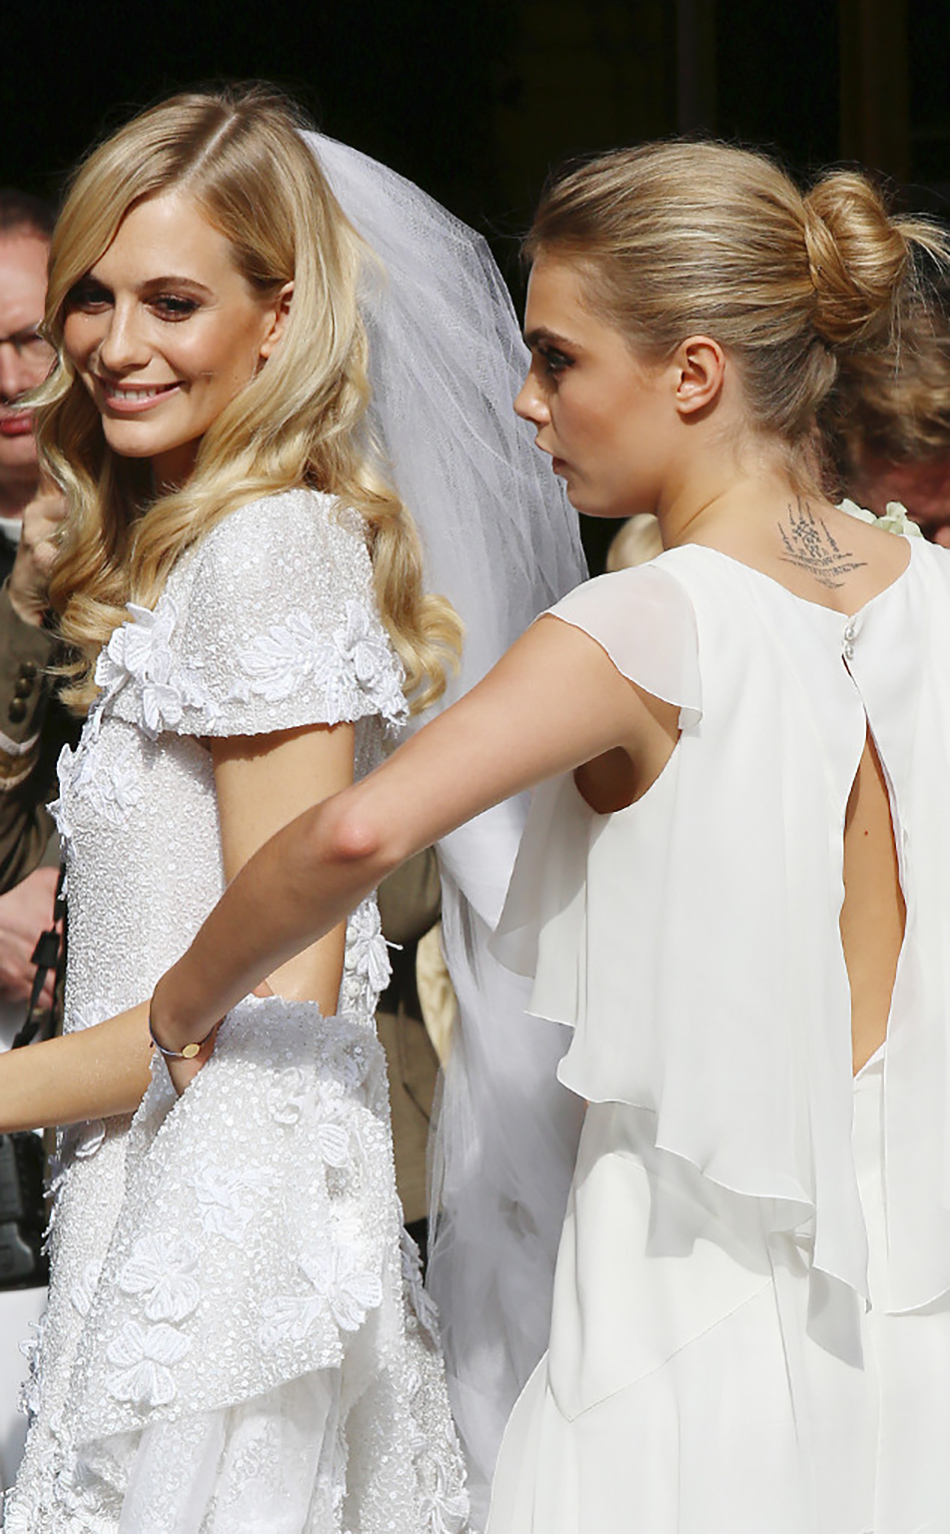 Quiz: Which Celebrity Bridesmaid are you most like?